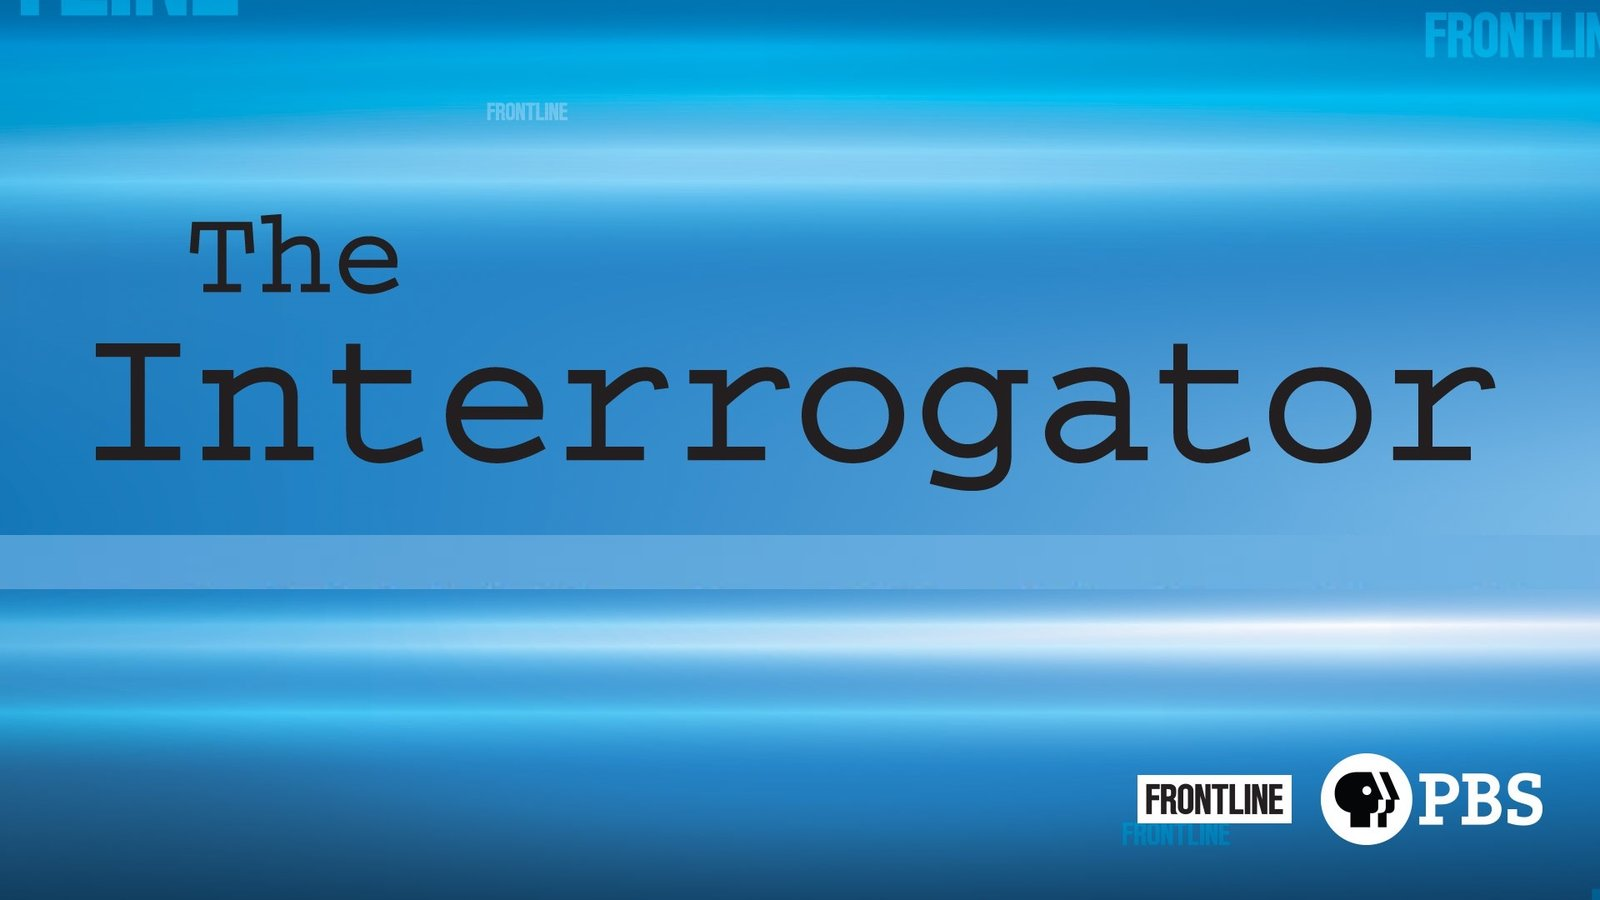 Frontline: The Interrogator